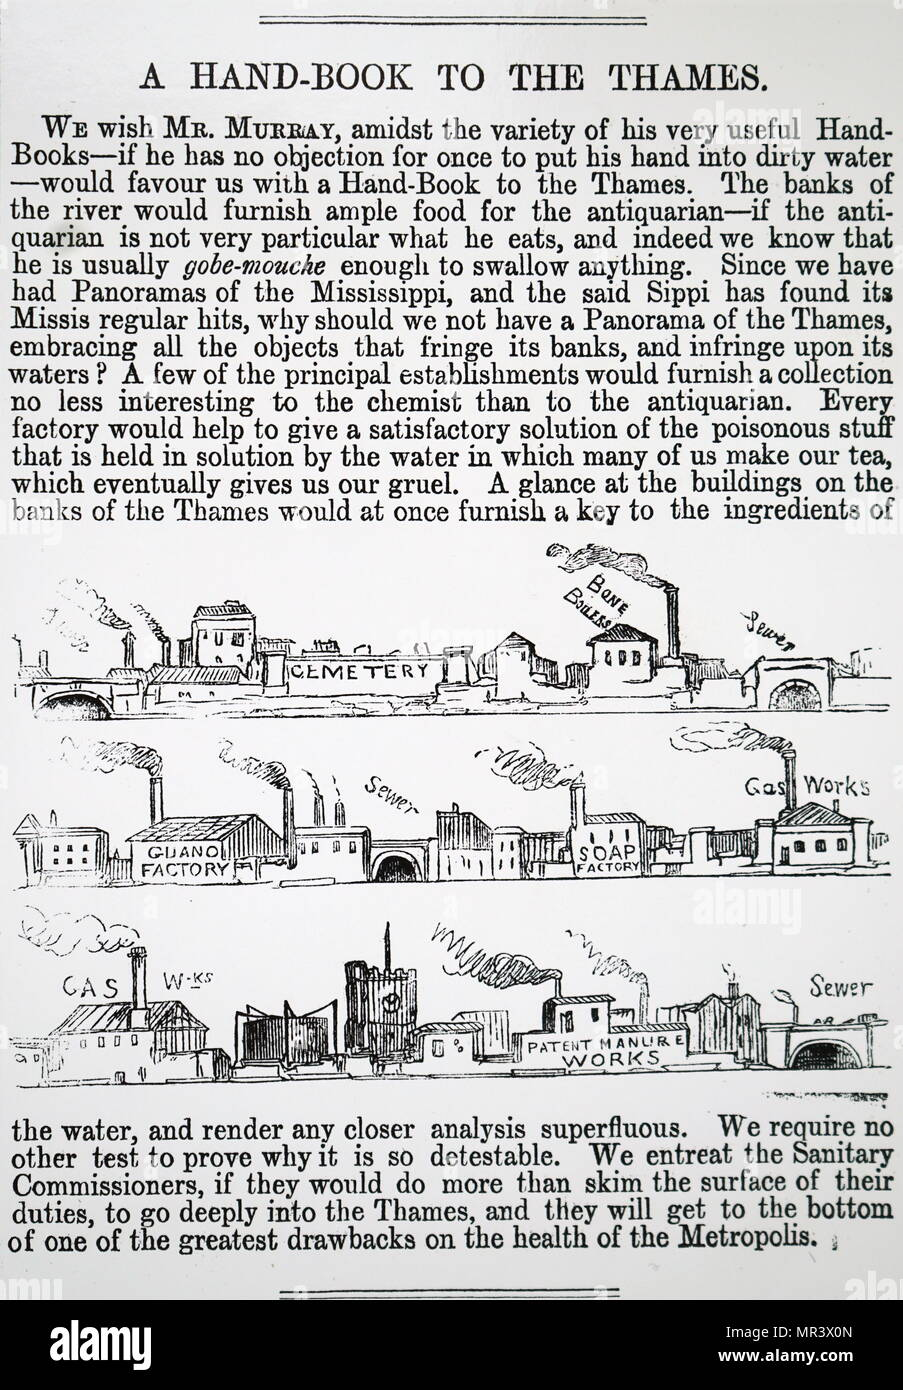 Copy of a complaint made about Thames pollution by establishments along the river bank. Dated 19th century - Stock Image